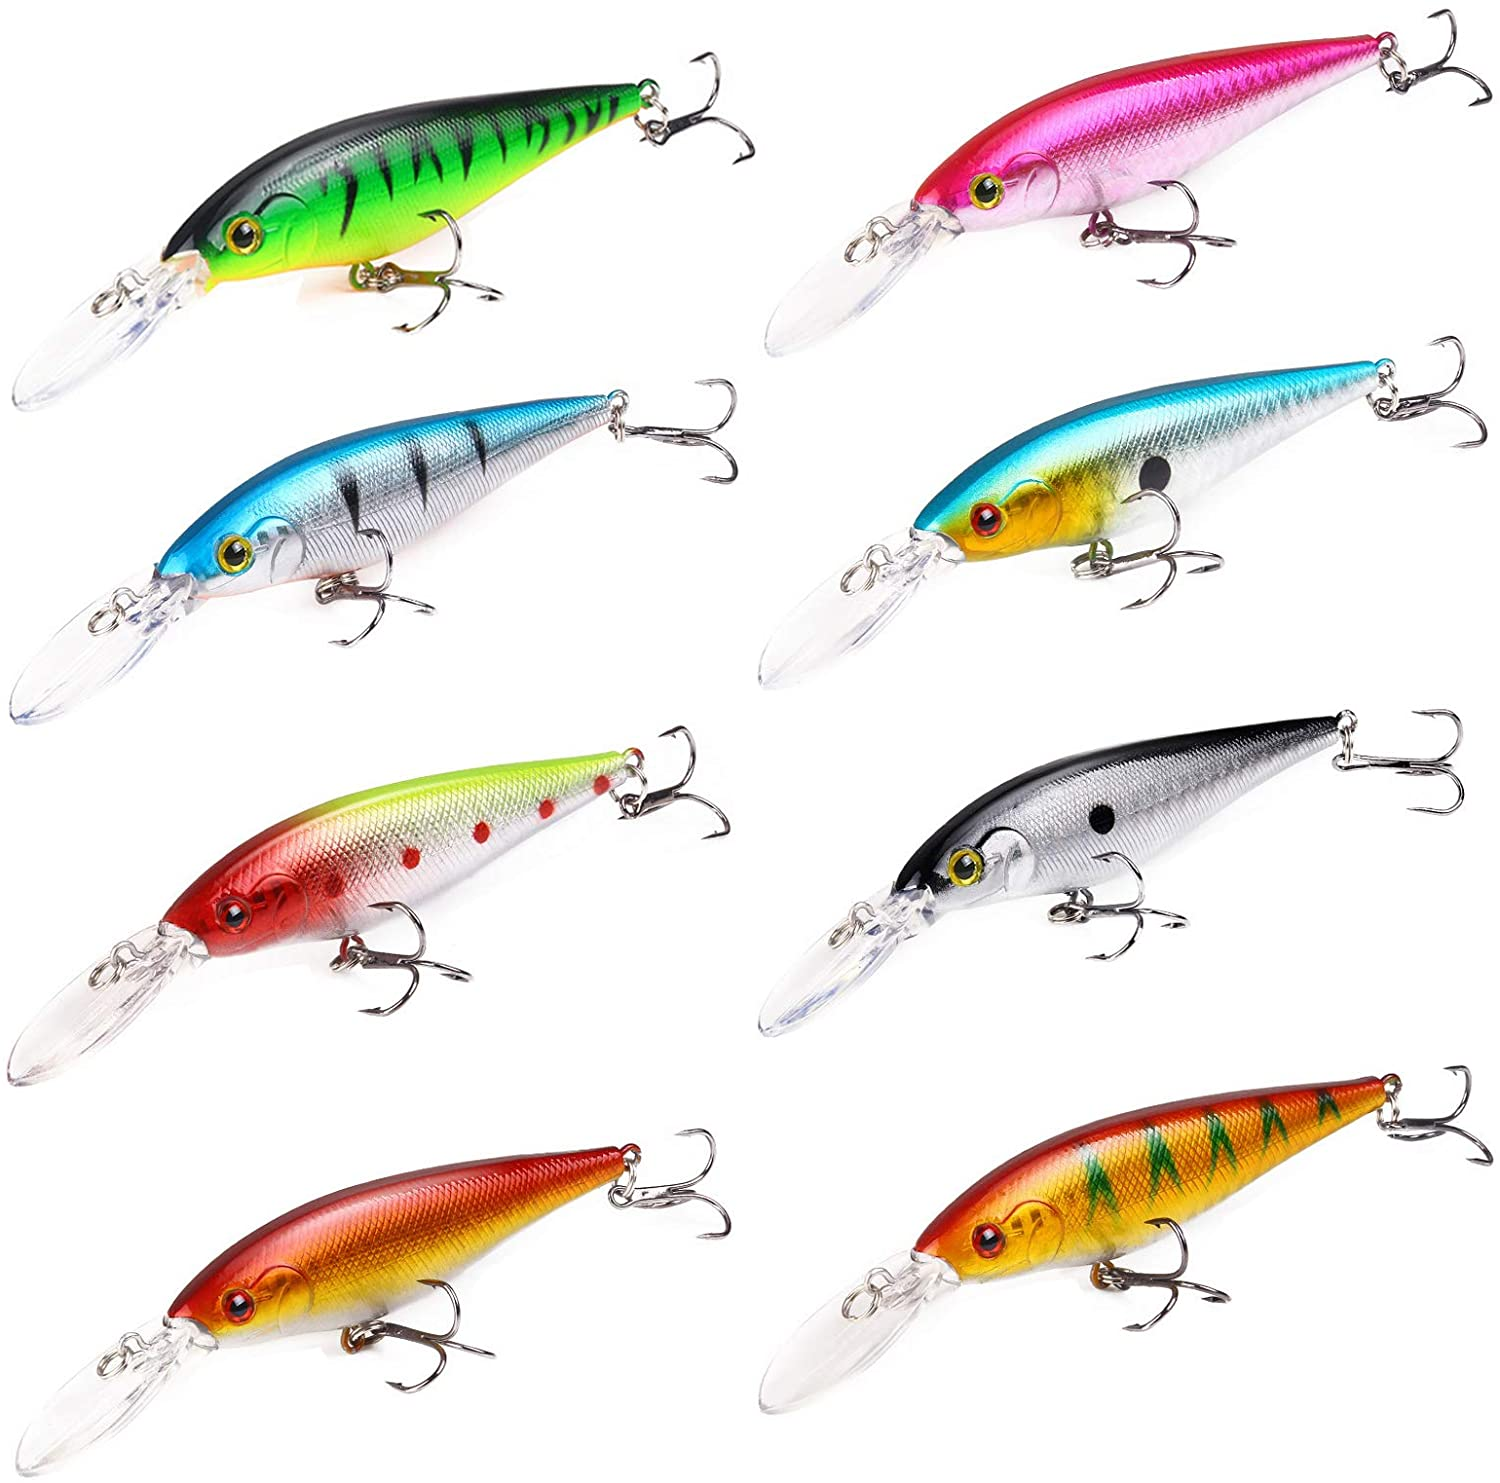 FANGULU 8 PCS The Bionic Bait Plastic Bionic Double Hook Bait 4.33 Inches /9.5g Bionic Colorful Double Hook Bait Applicable to Fresh Water Salt Water All Kinds of Water Depth Carp